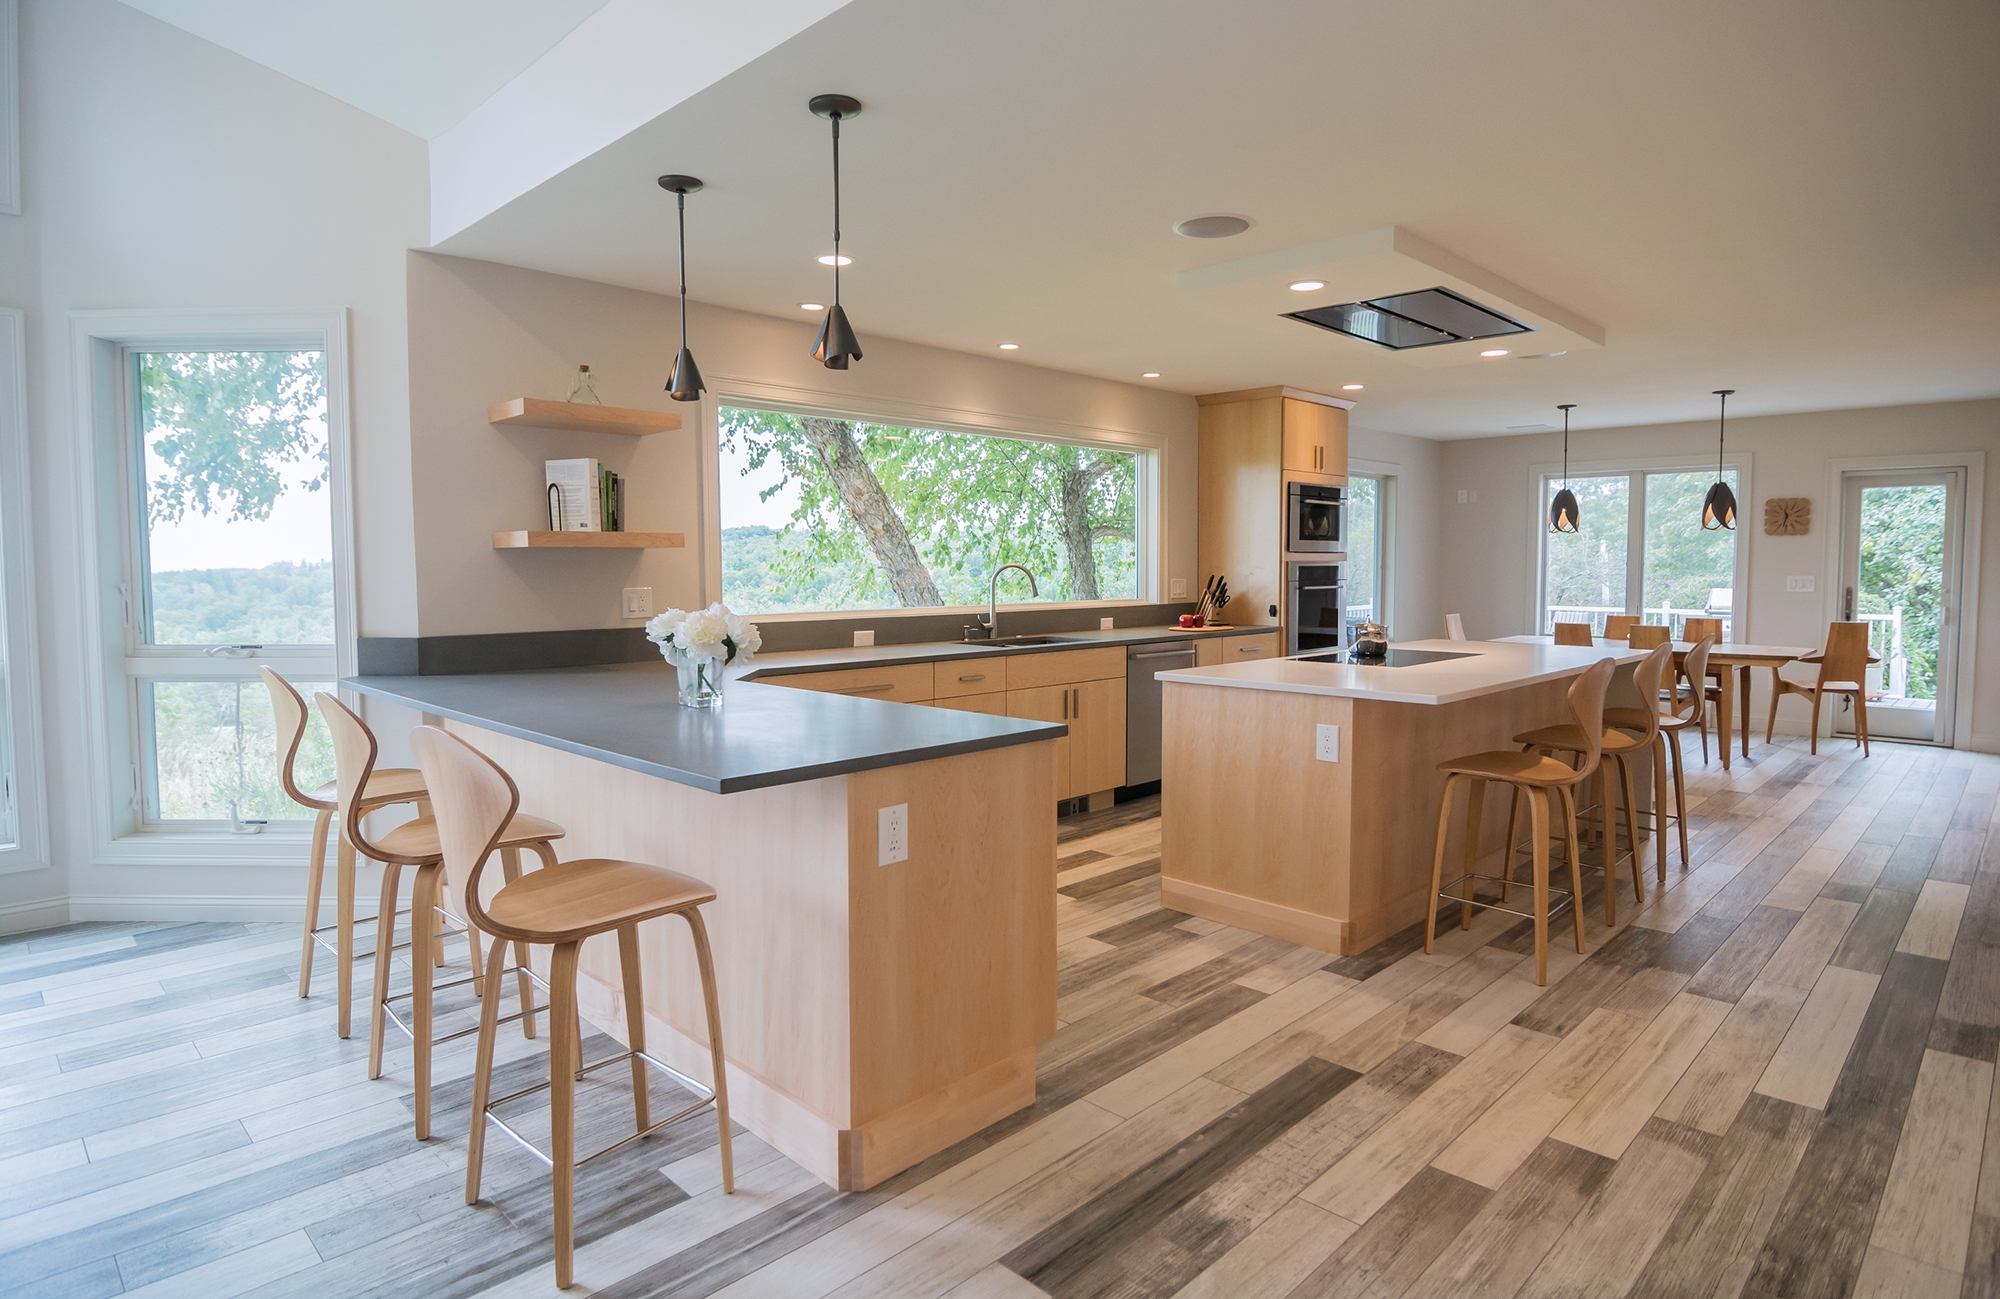 Kitchen Cabinets in Natural Maple by ShowplaceEVO - view 1